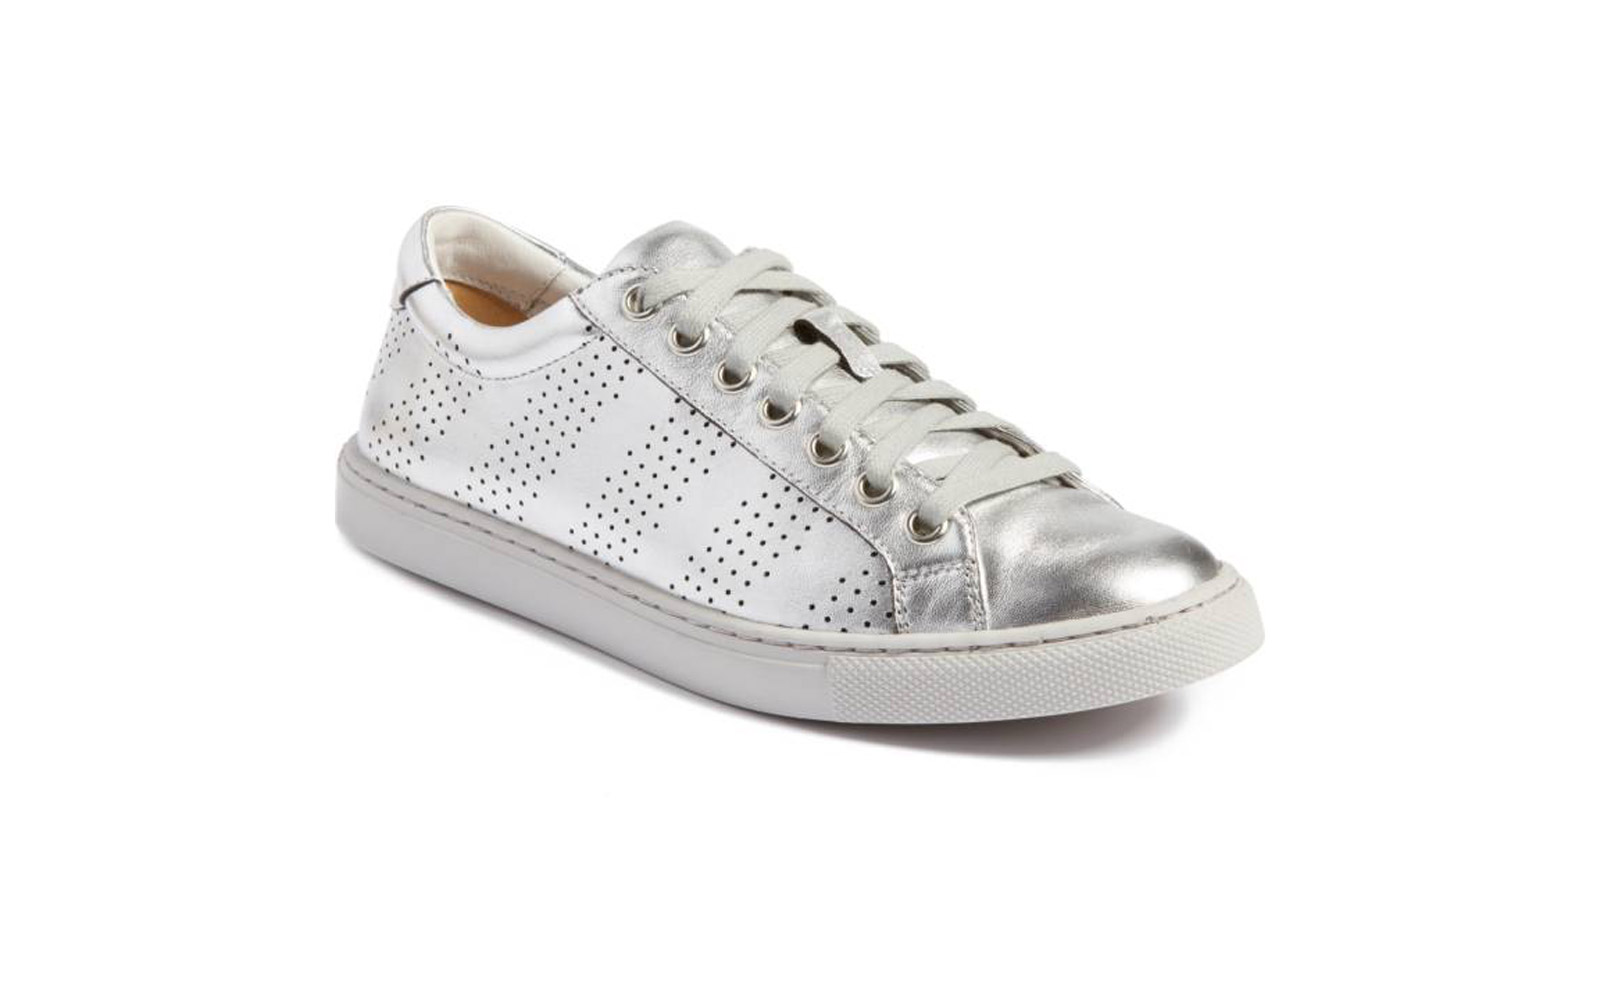 Treasure & Bond Merrick Perforated Sneaker